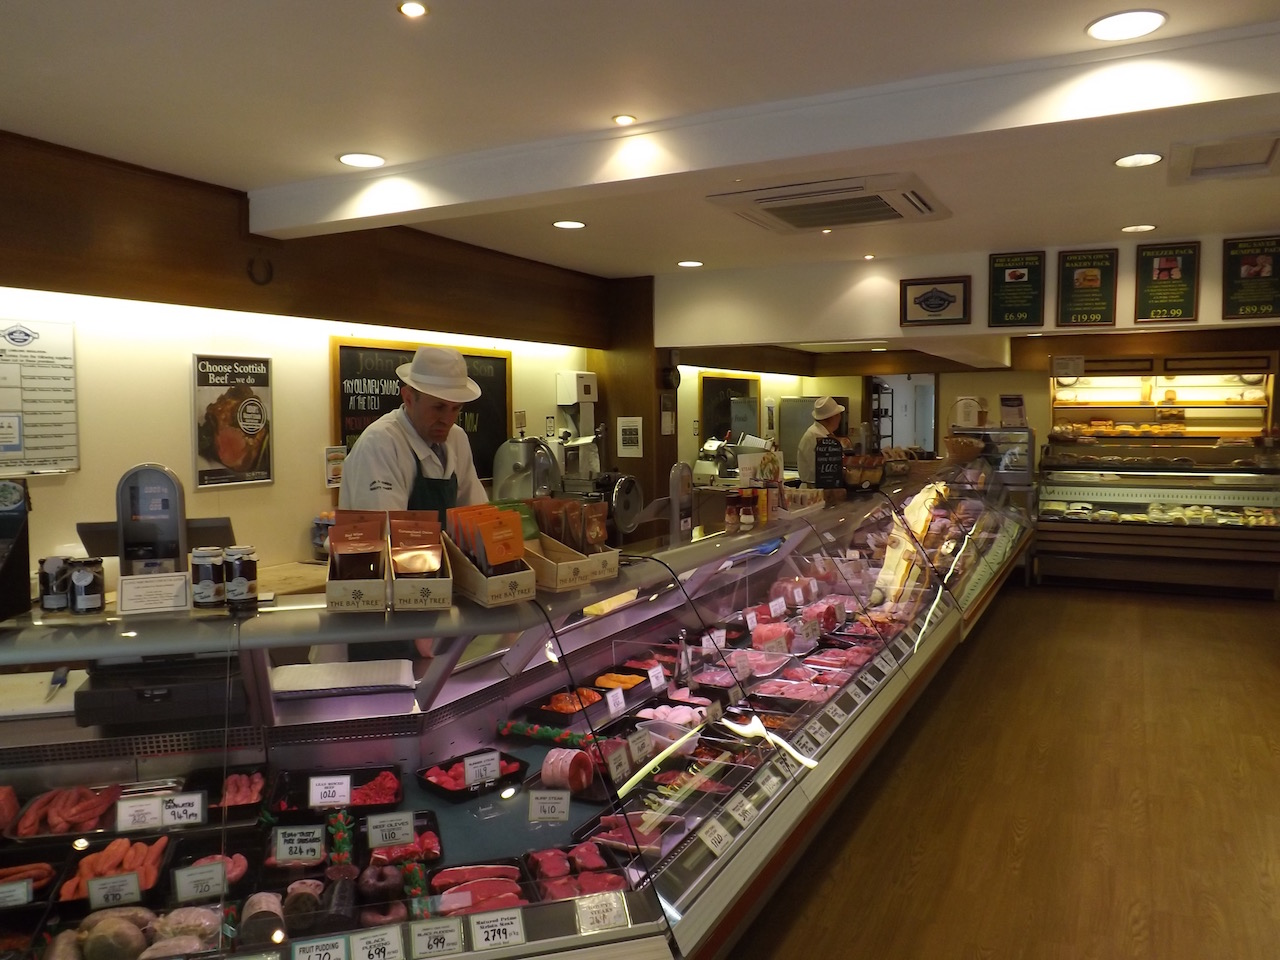 Interior shot showing the new refrigerated counters and a grand display of butcher meat and deli produce